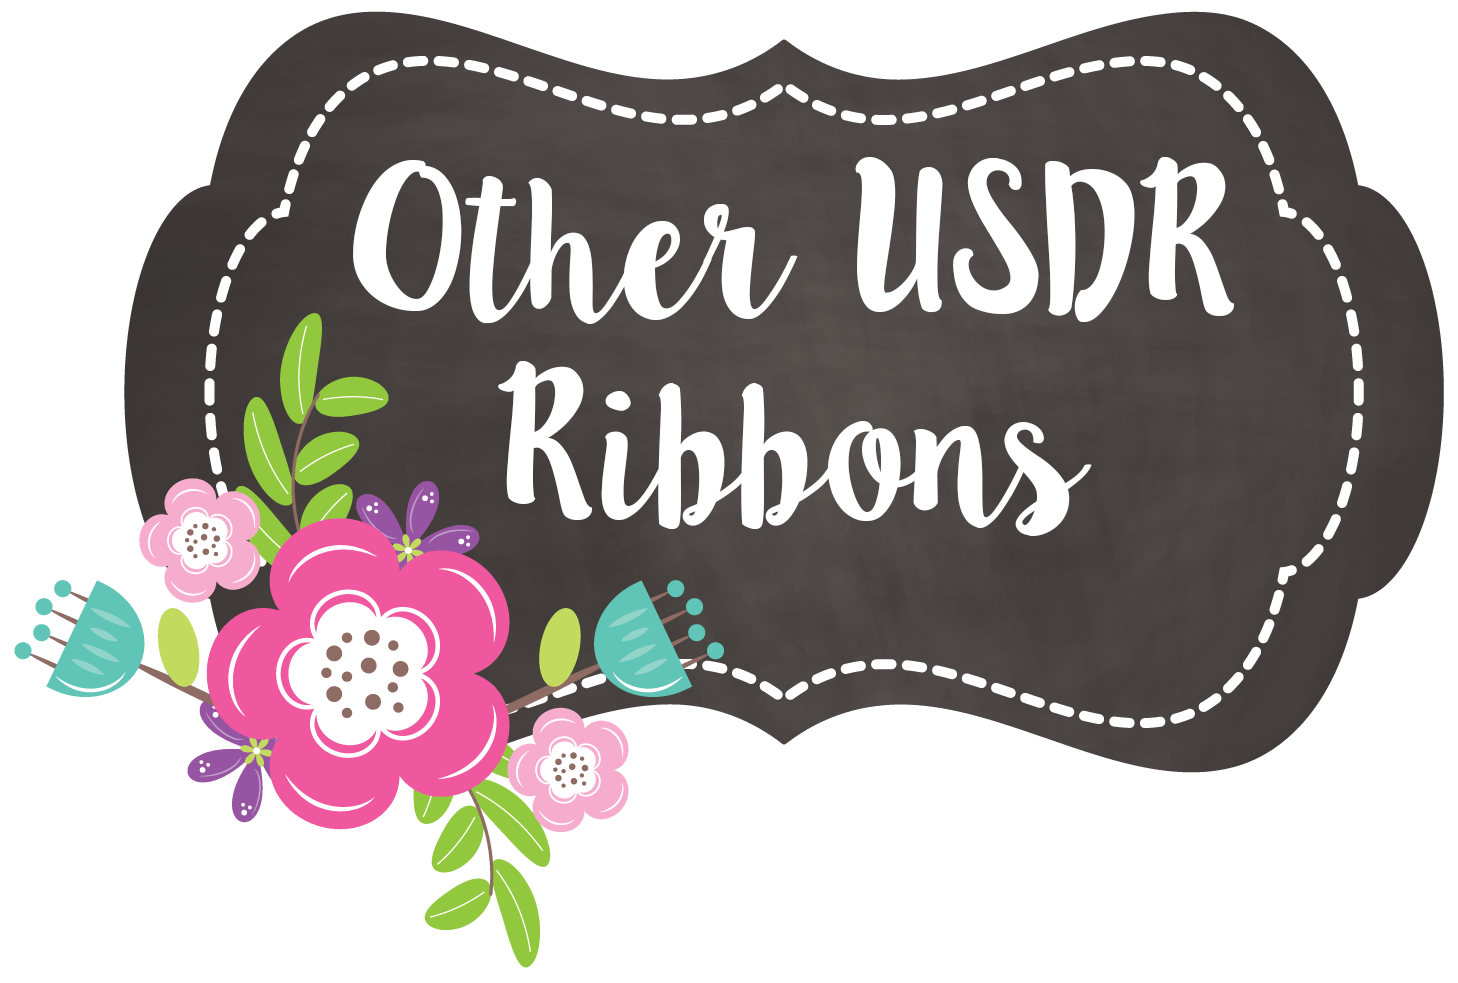 other USDR ribbons